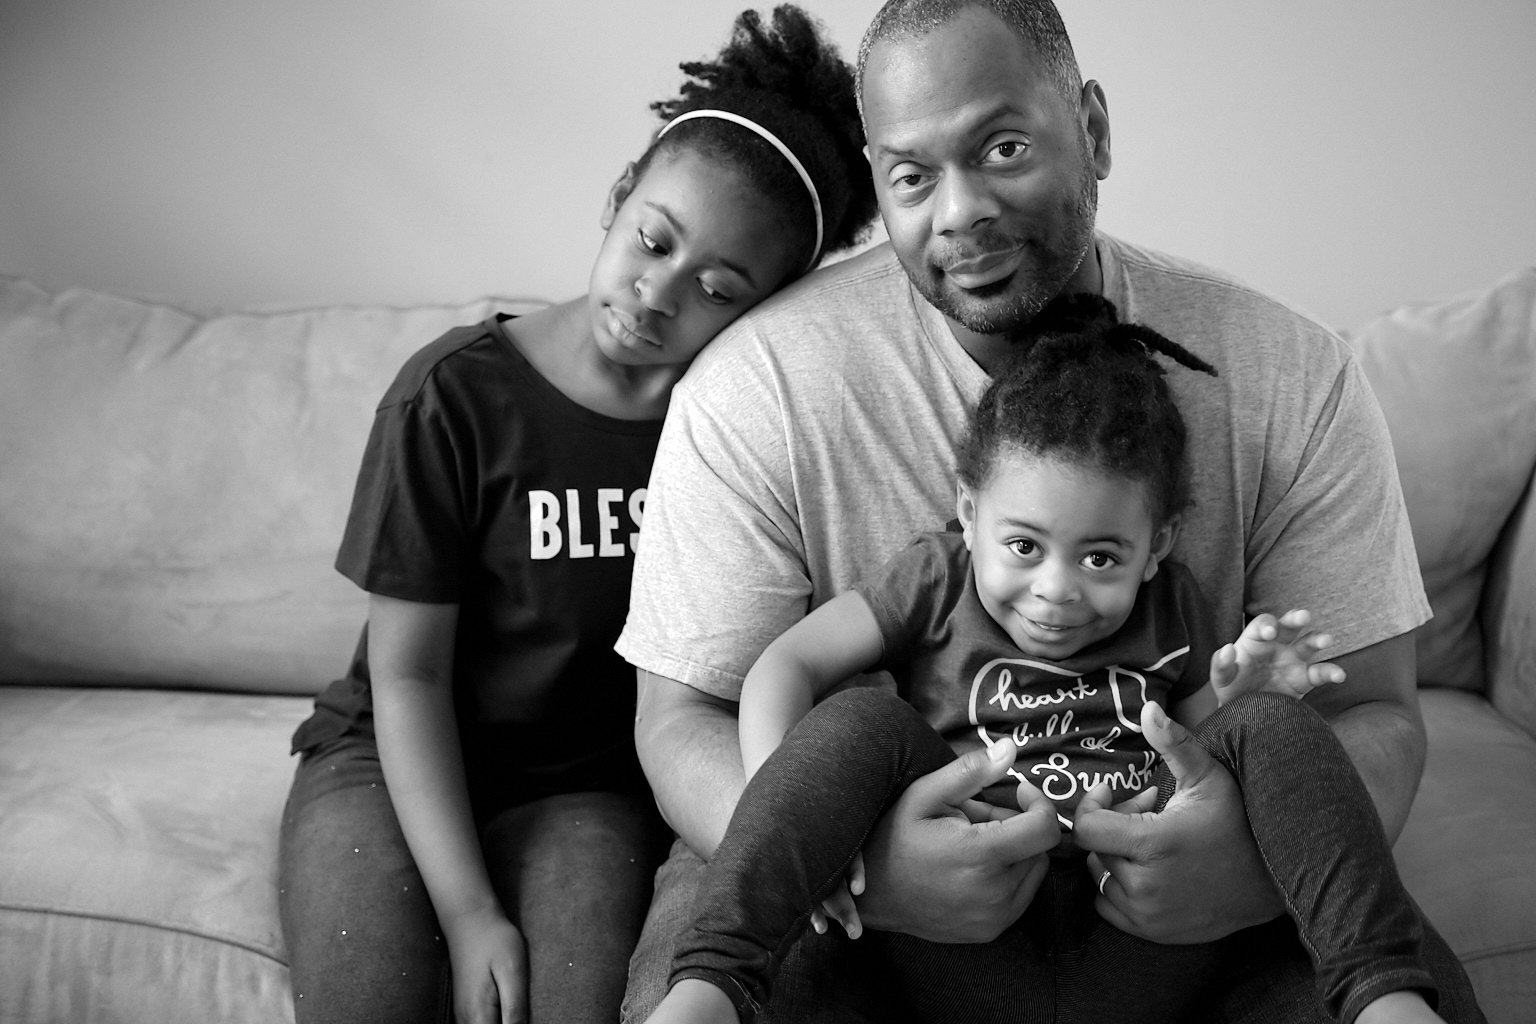 Lenzy_Ruffin_Photograph_Family_Lifestye_2019-04-20-116.jpg